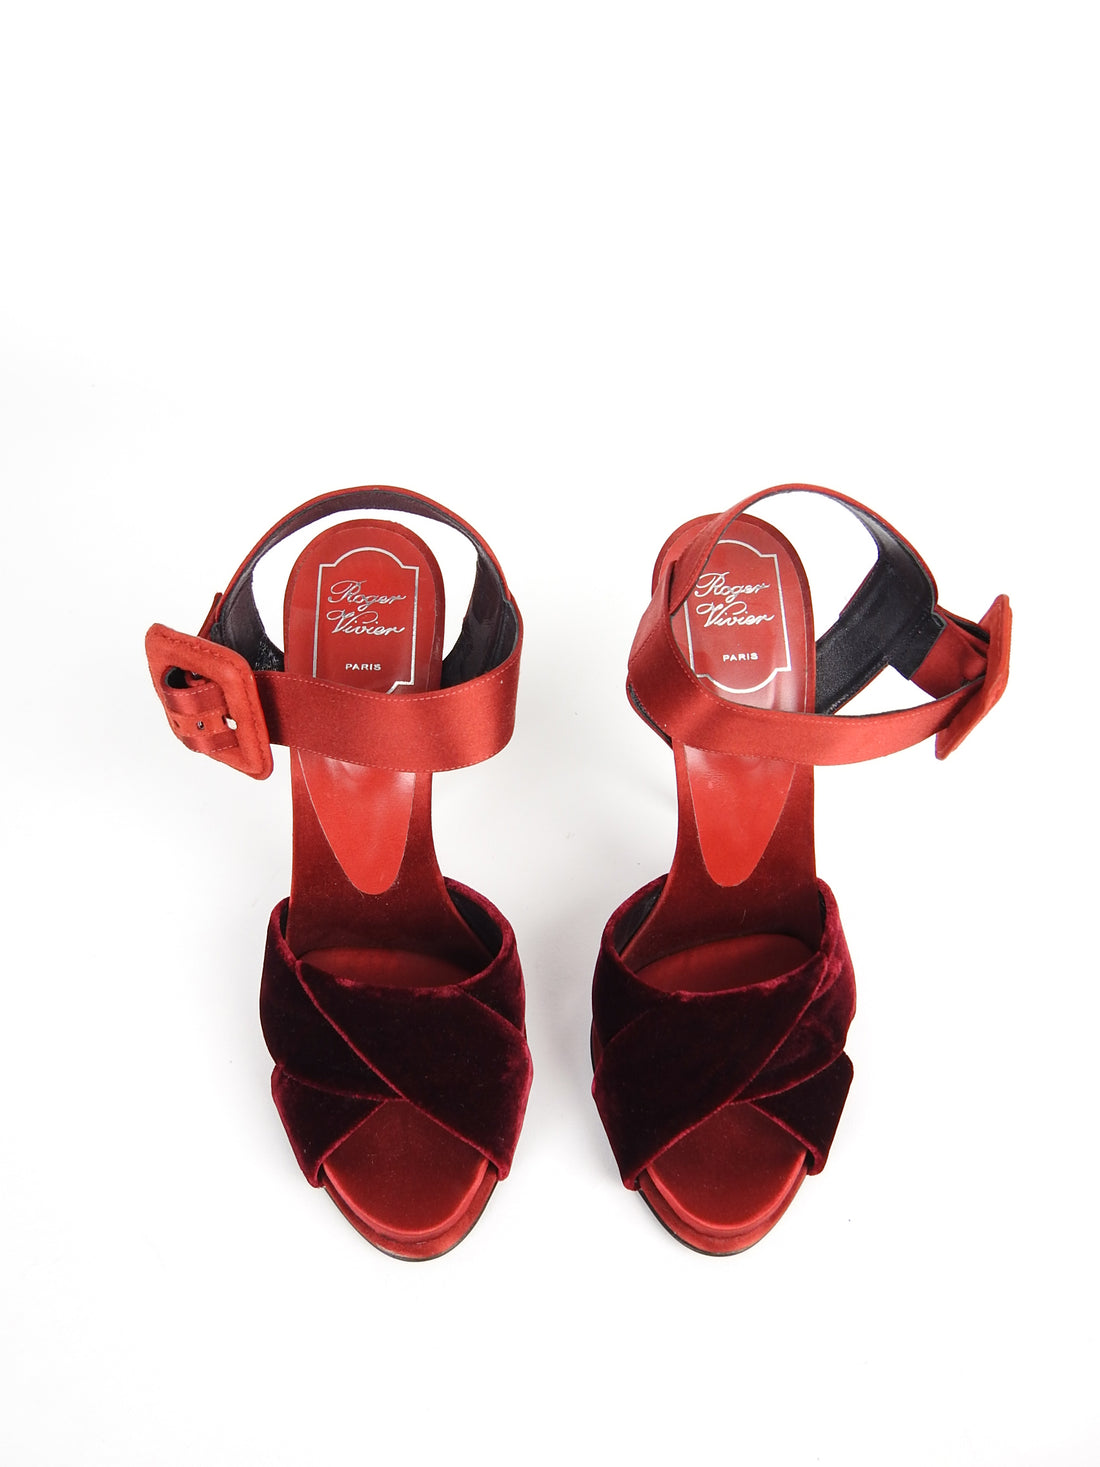 Roger Vivier Red Velvet and Satin Sandals - 40 / 9.5